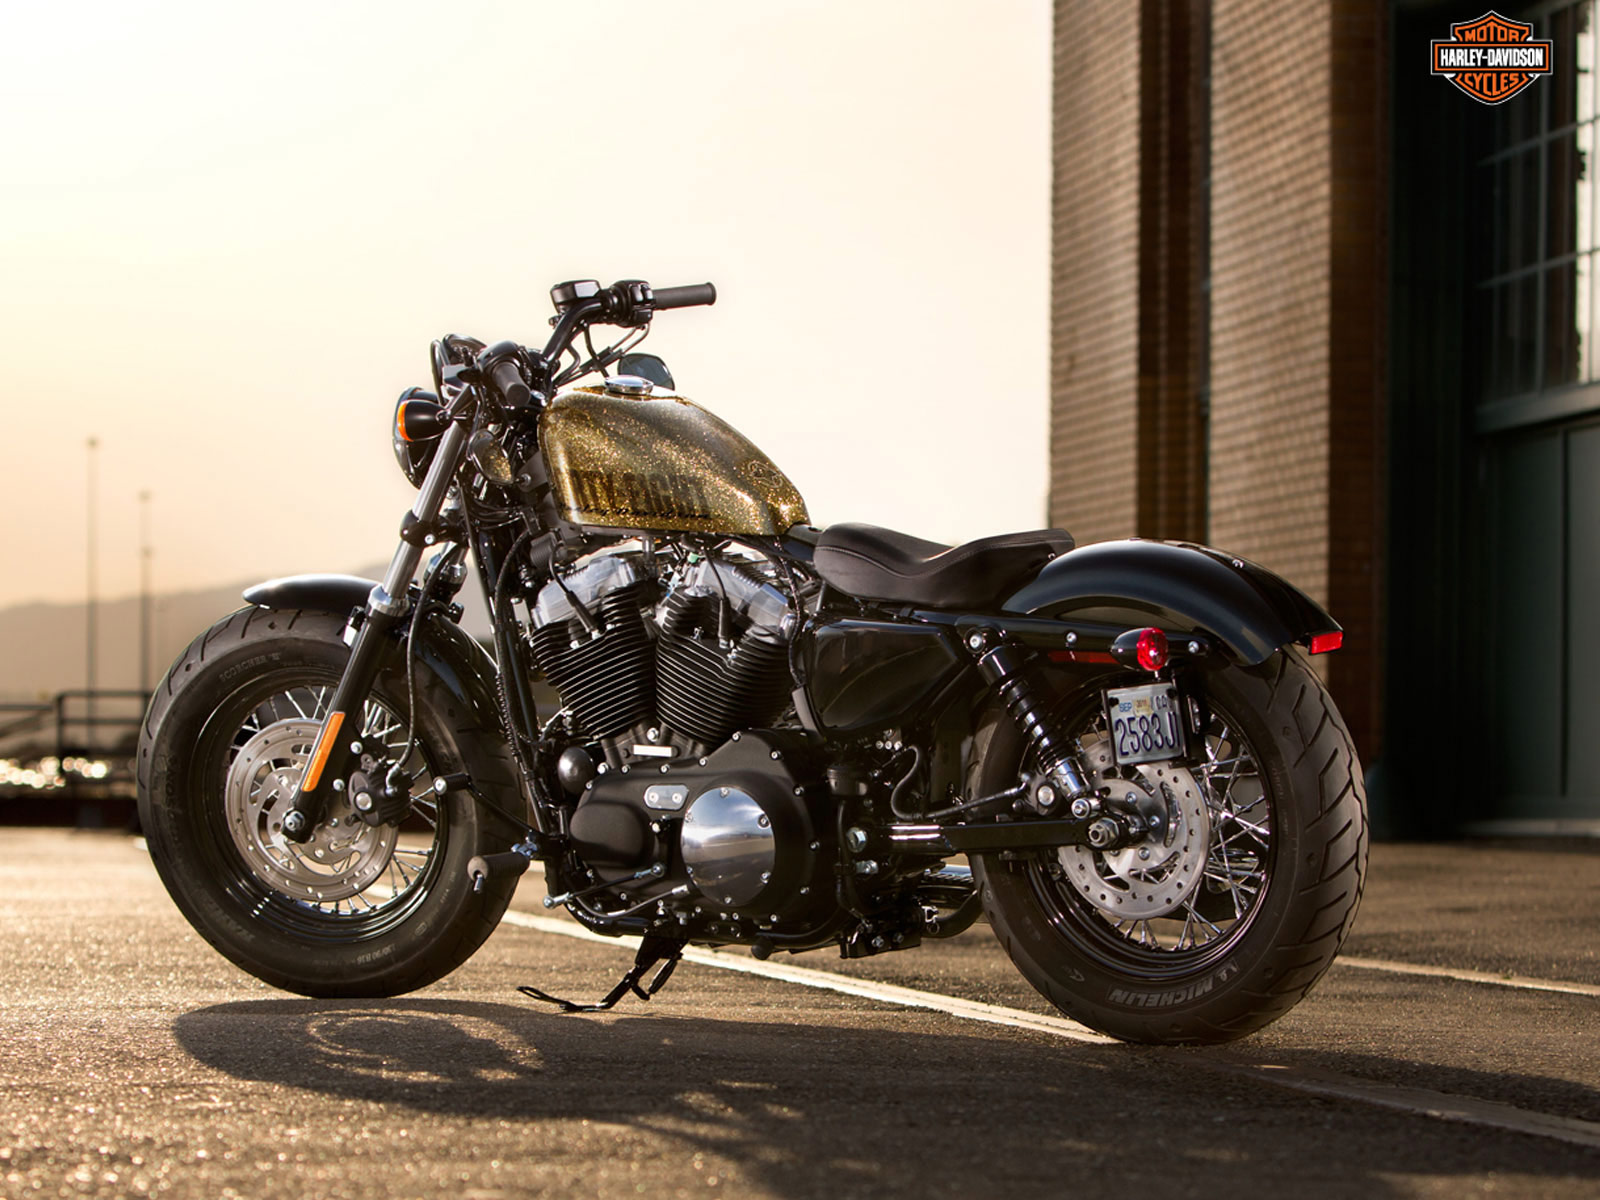 Harley Davidson Pictures, Specs. Accident Lawyers, Insurance